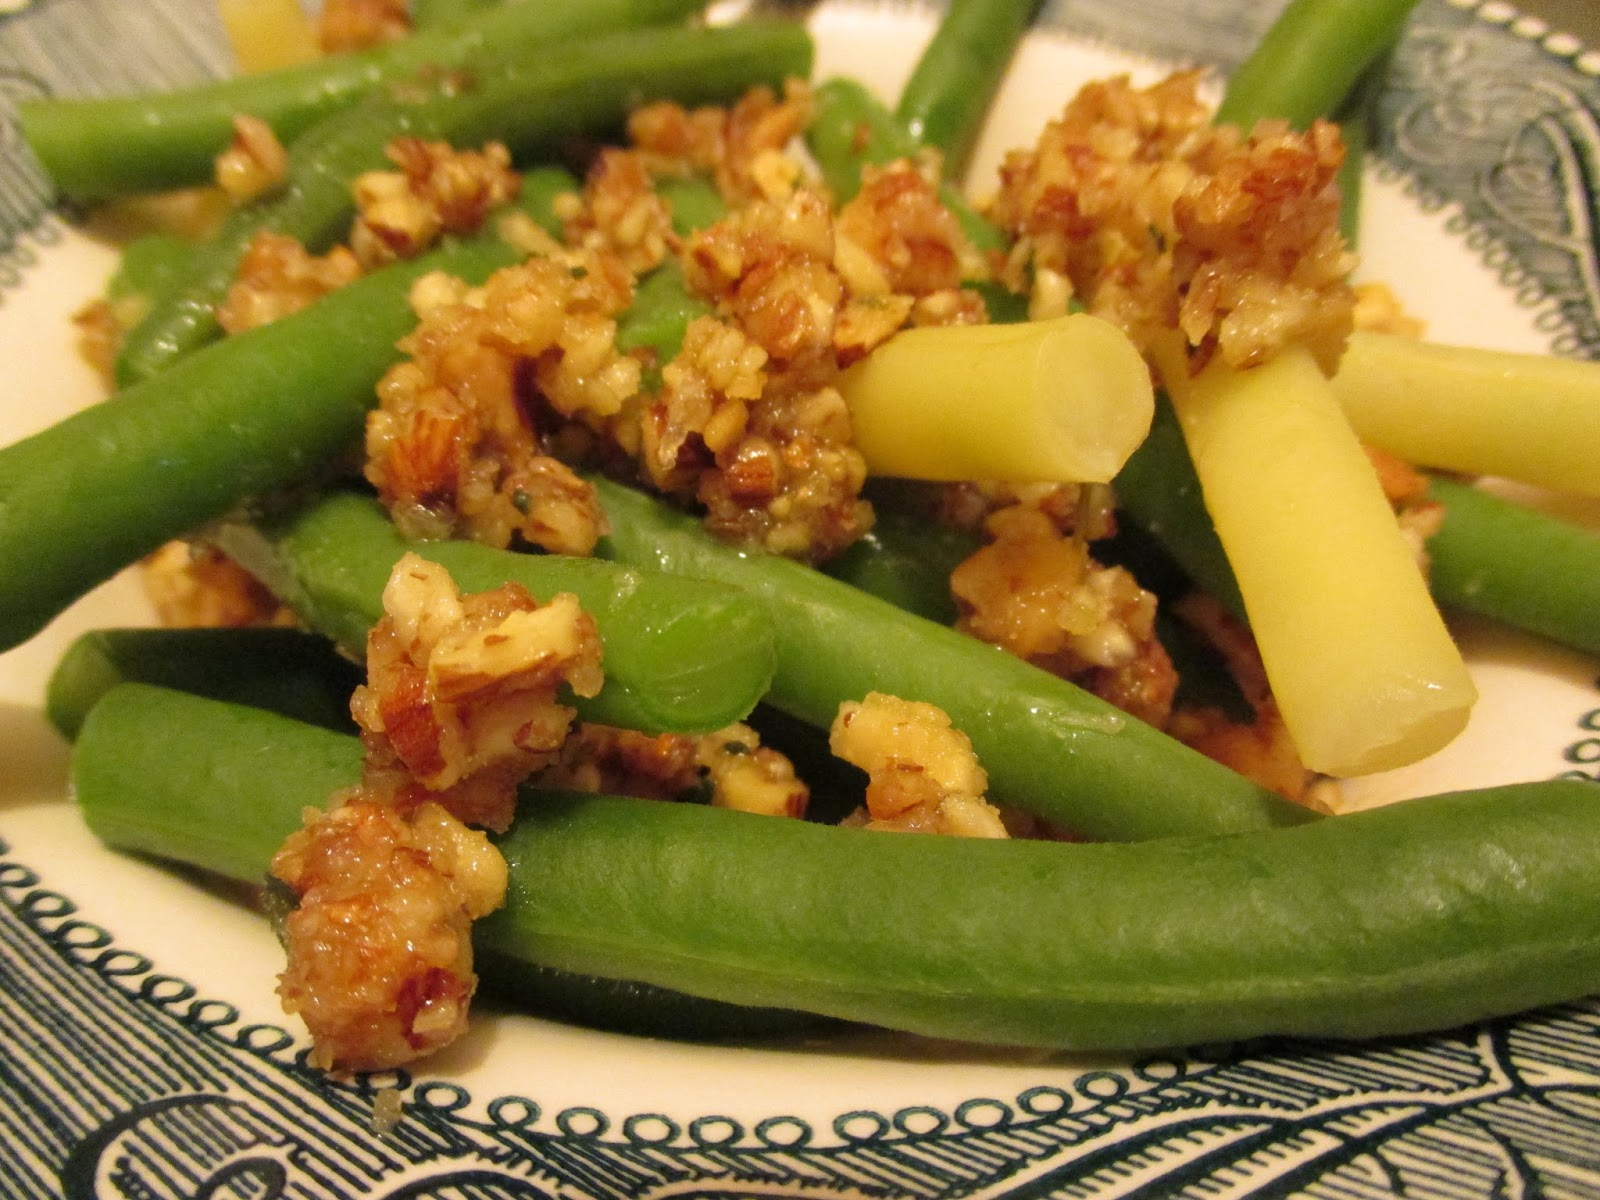 Bookcook: GREEN BEANS WITH ALMOND PESTO